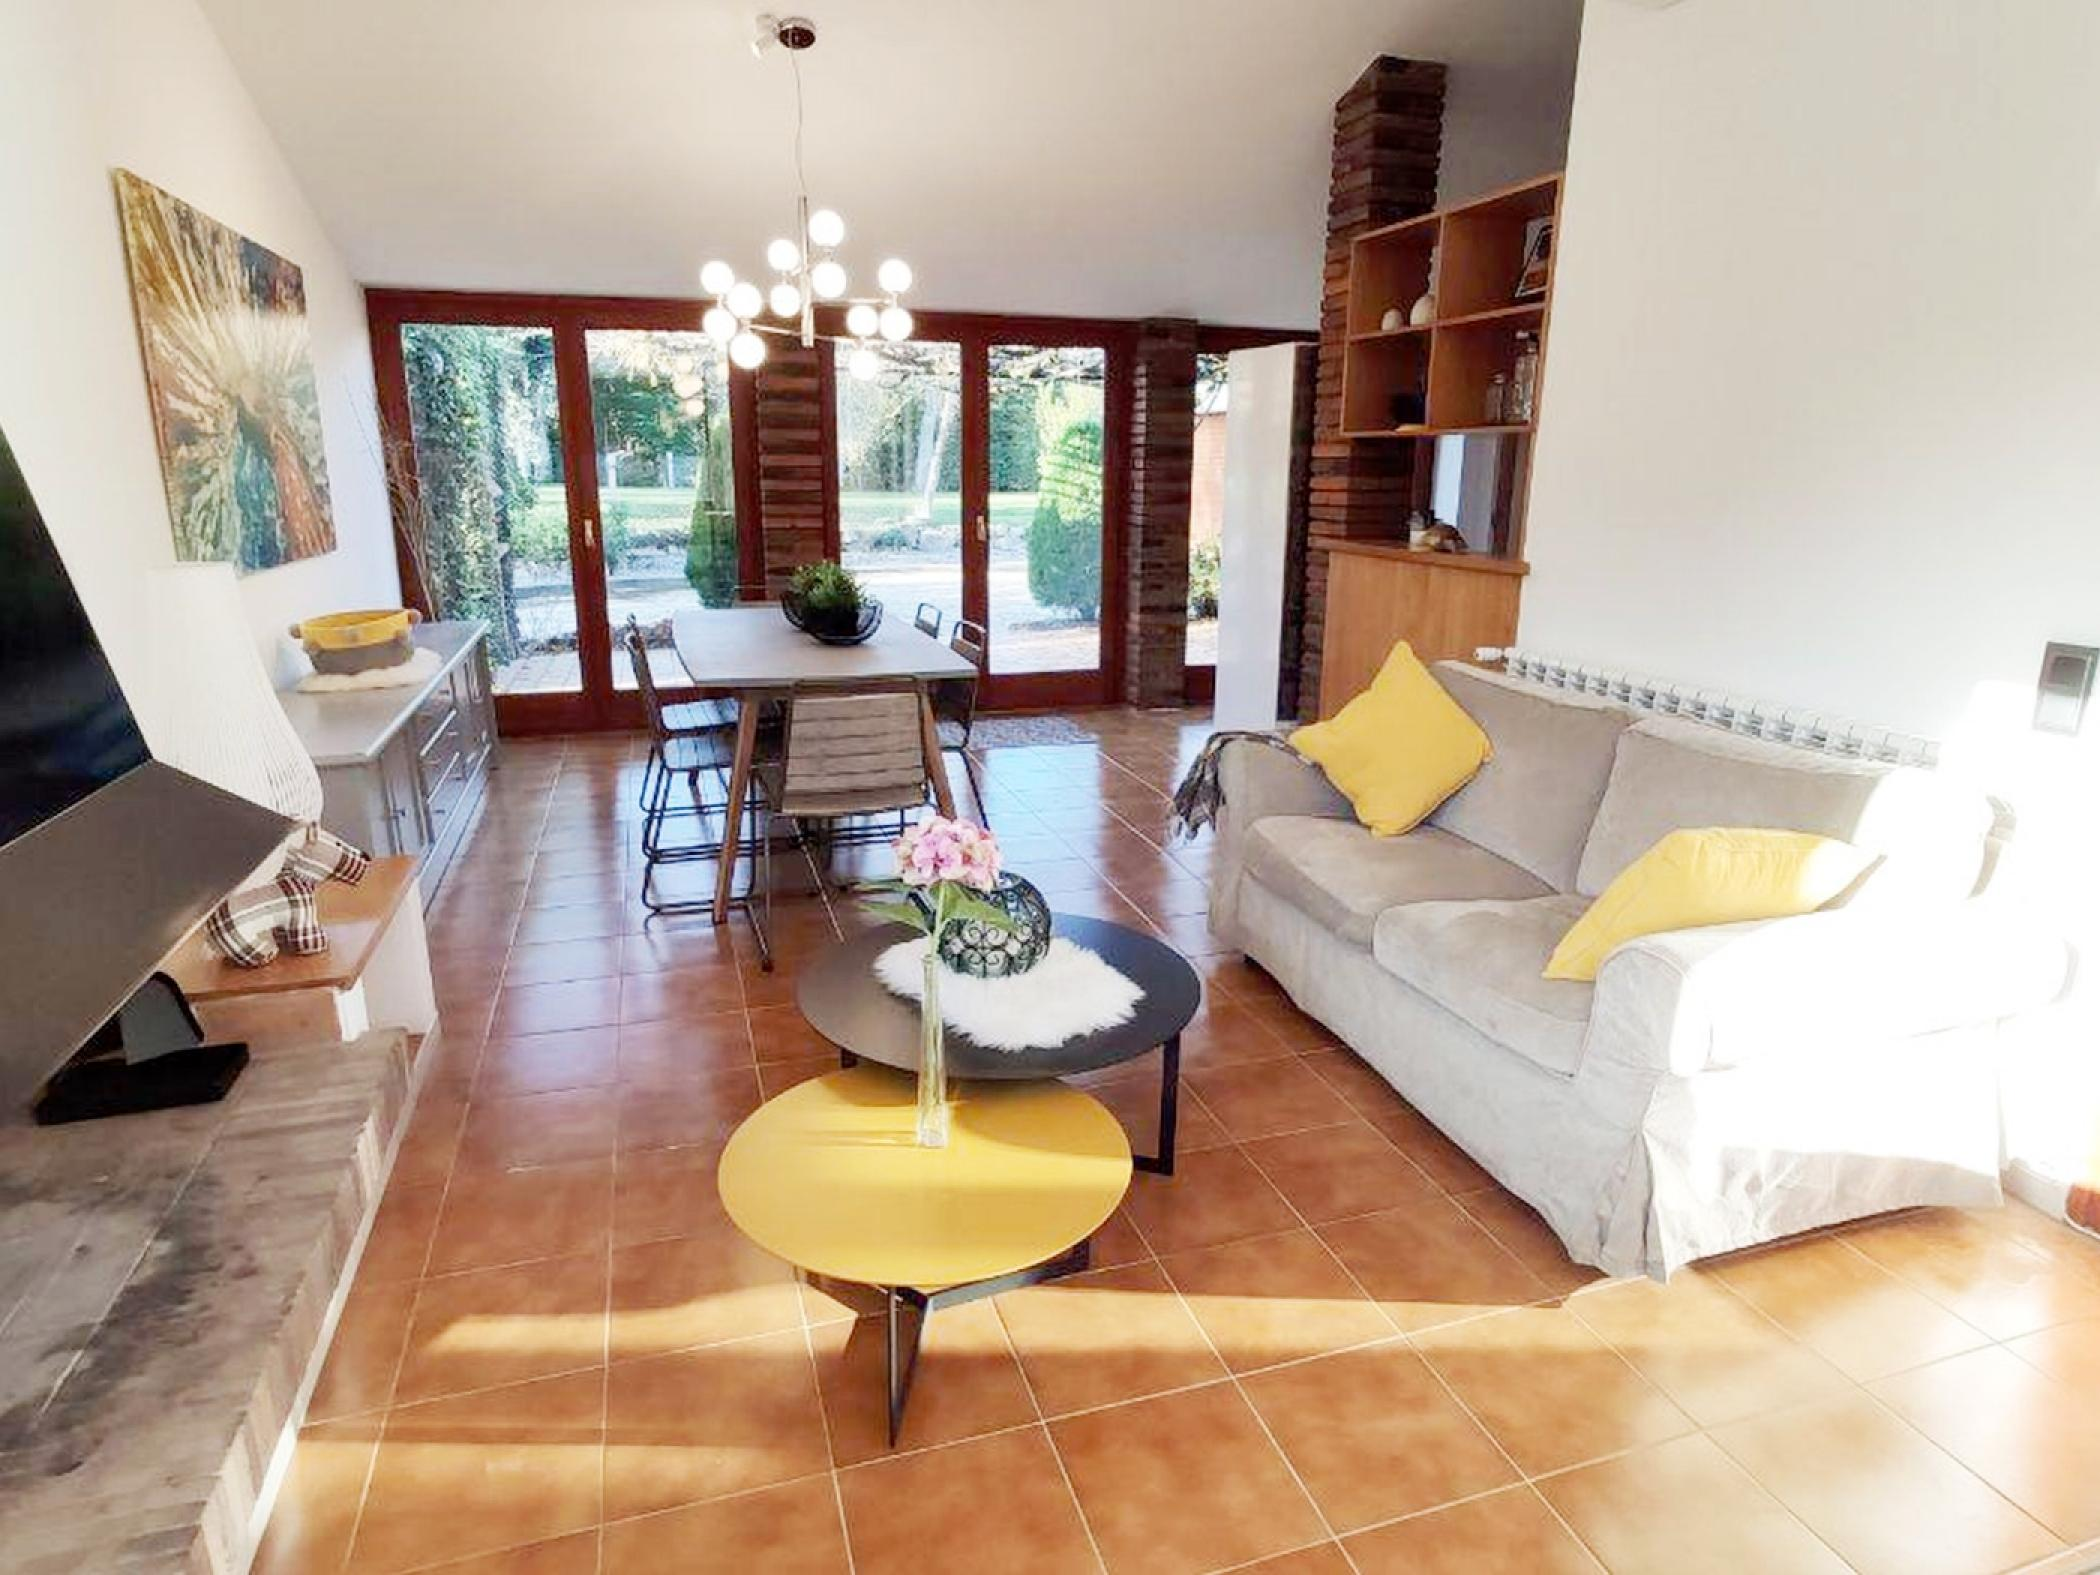 Rent Villa with Swimming pool in Caldes de Malavella - Villa a Caldes de Malavella Molins - 3